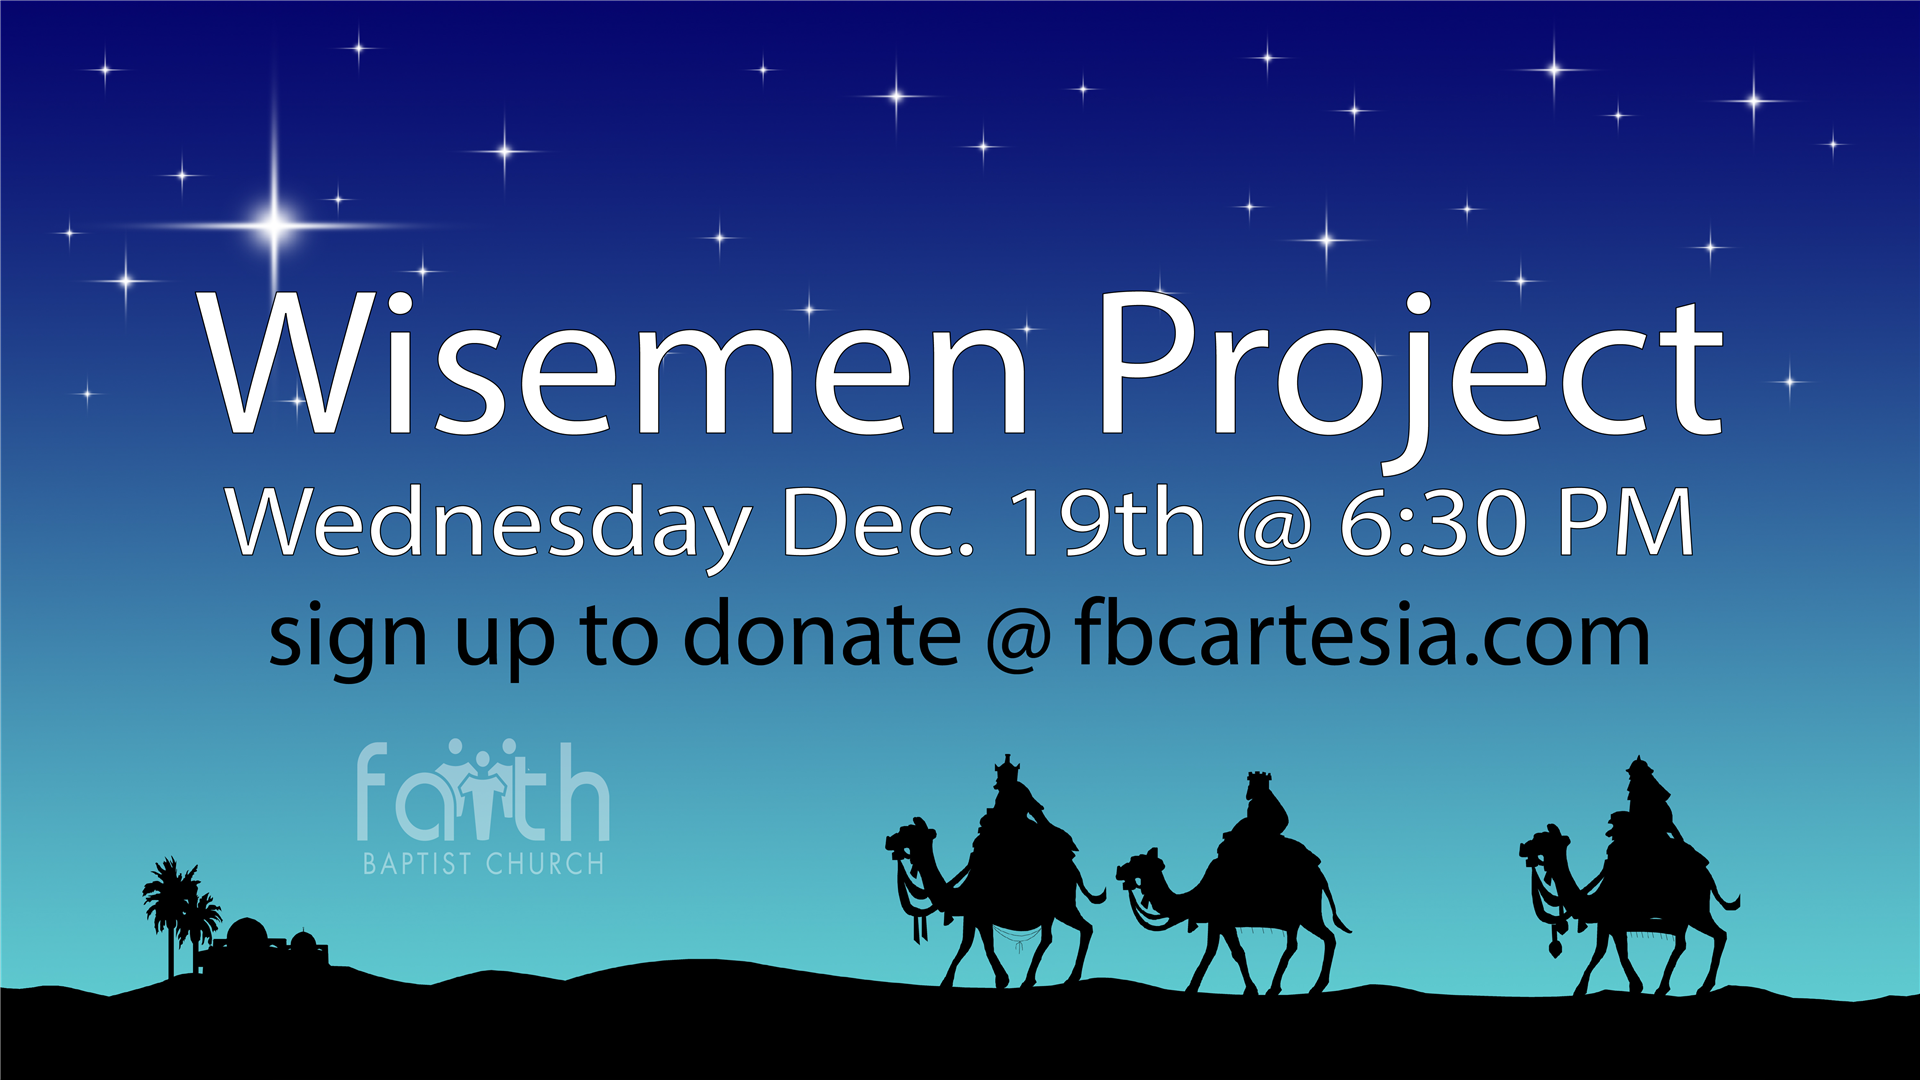 Wisemen Project_resized.png